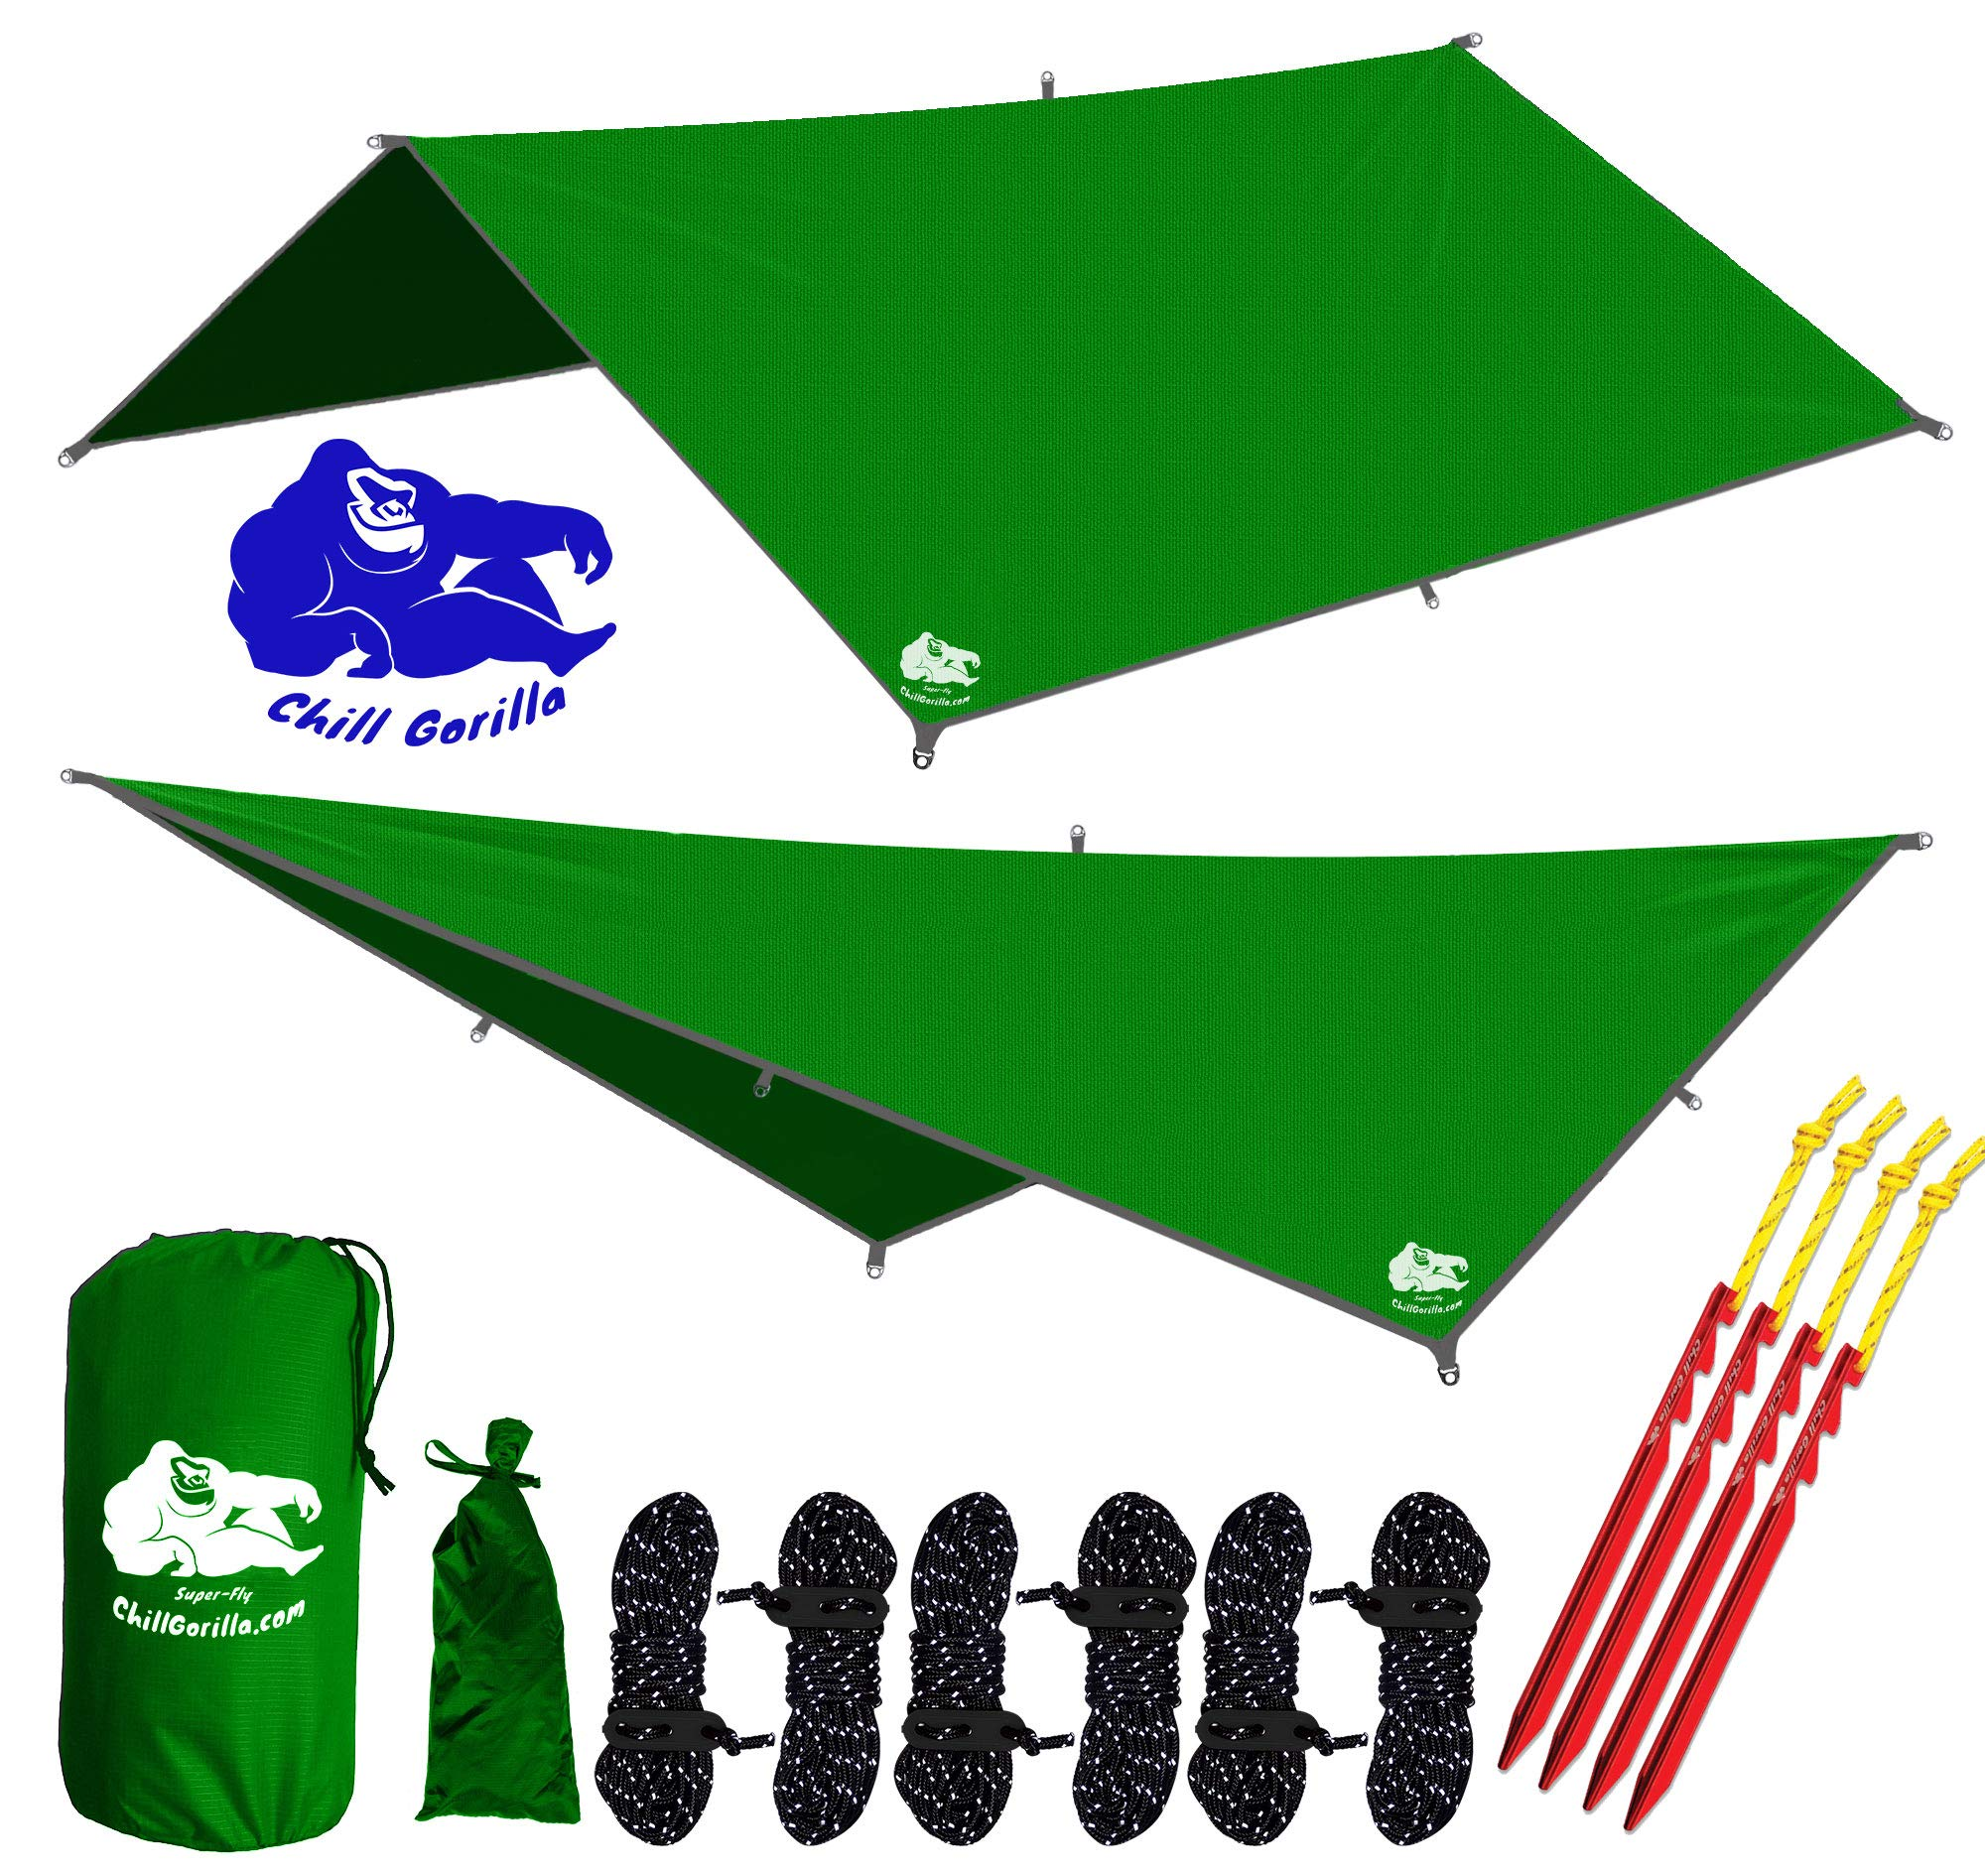 Chill Gorilla 10x10 Hammock Rain Fly Camping Tarp. Ripstop Nylon. 170'' Centerline. Stakes, Ropes & Tensioners Included. Camping Gear & Accessories. Perfect Hammock Tent. Green by Chill Gorilla